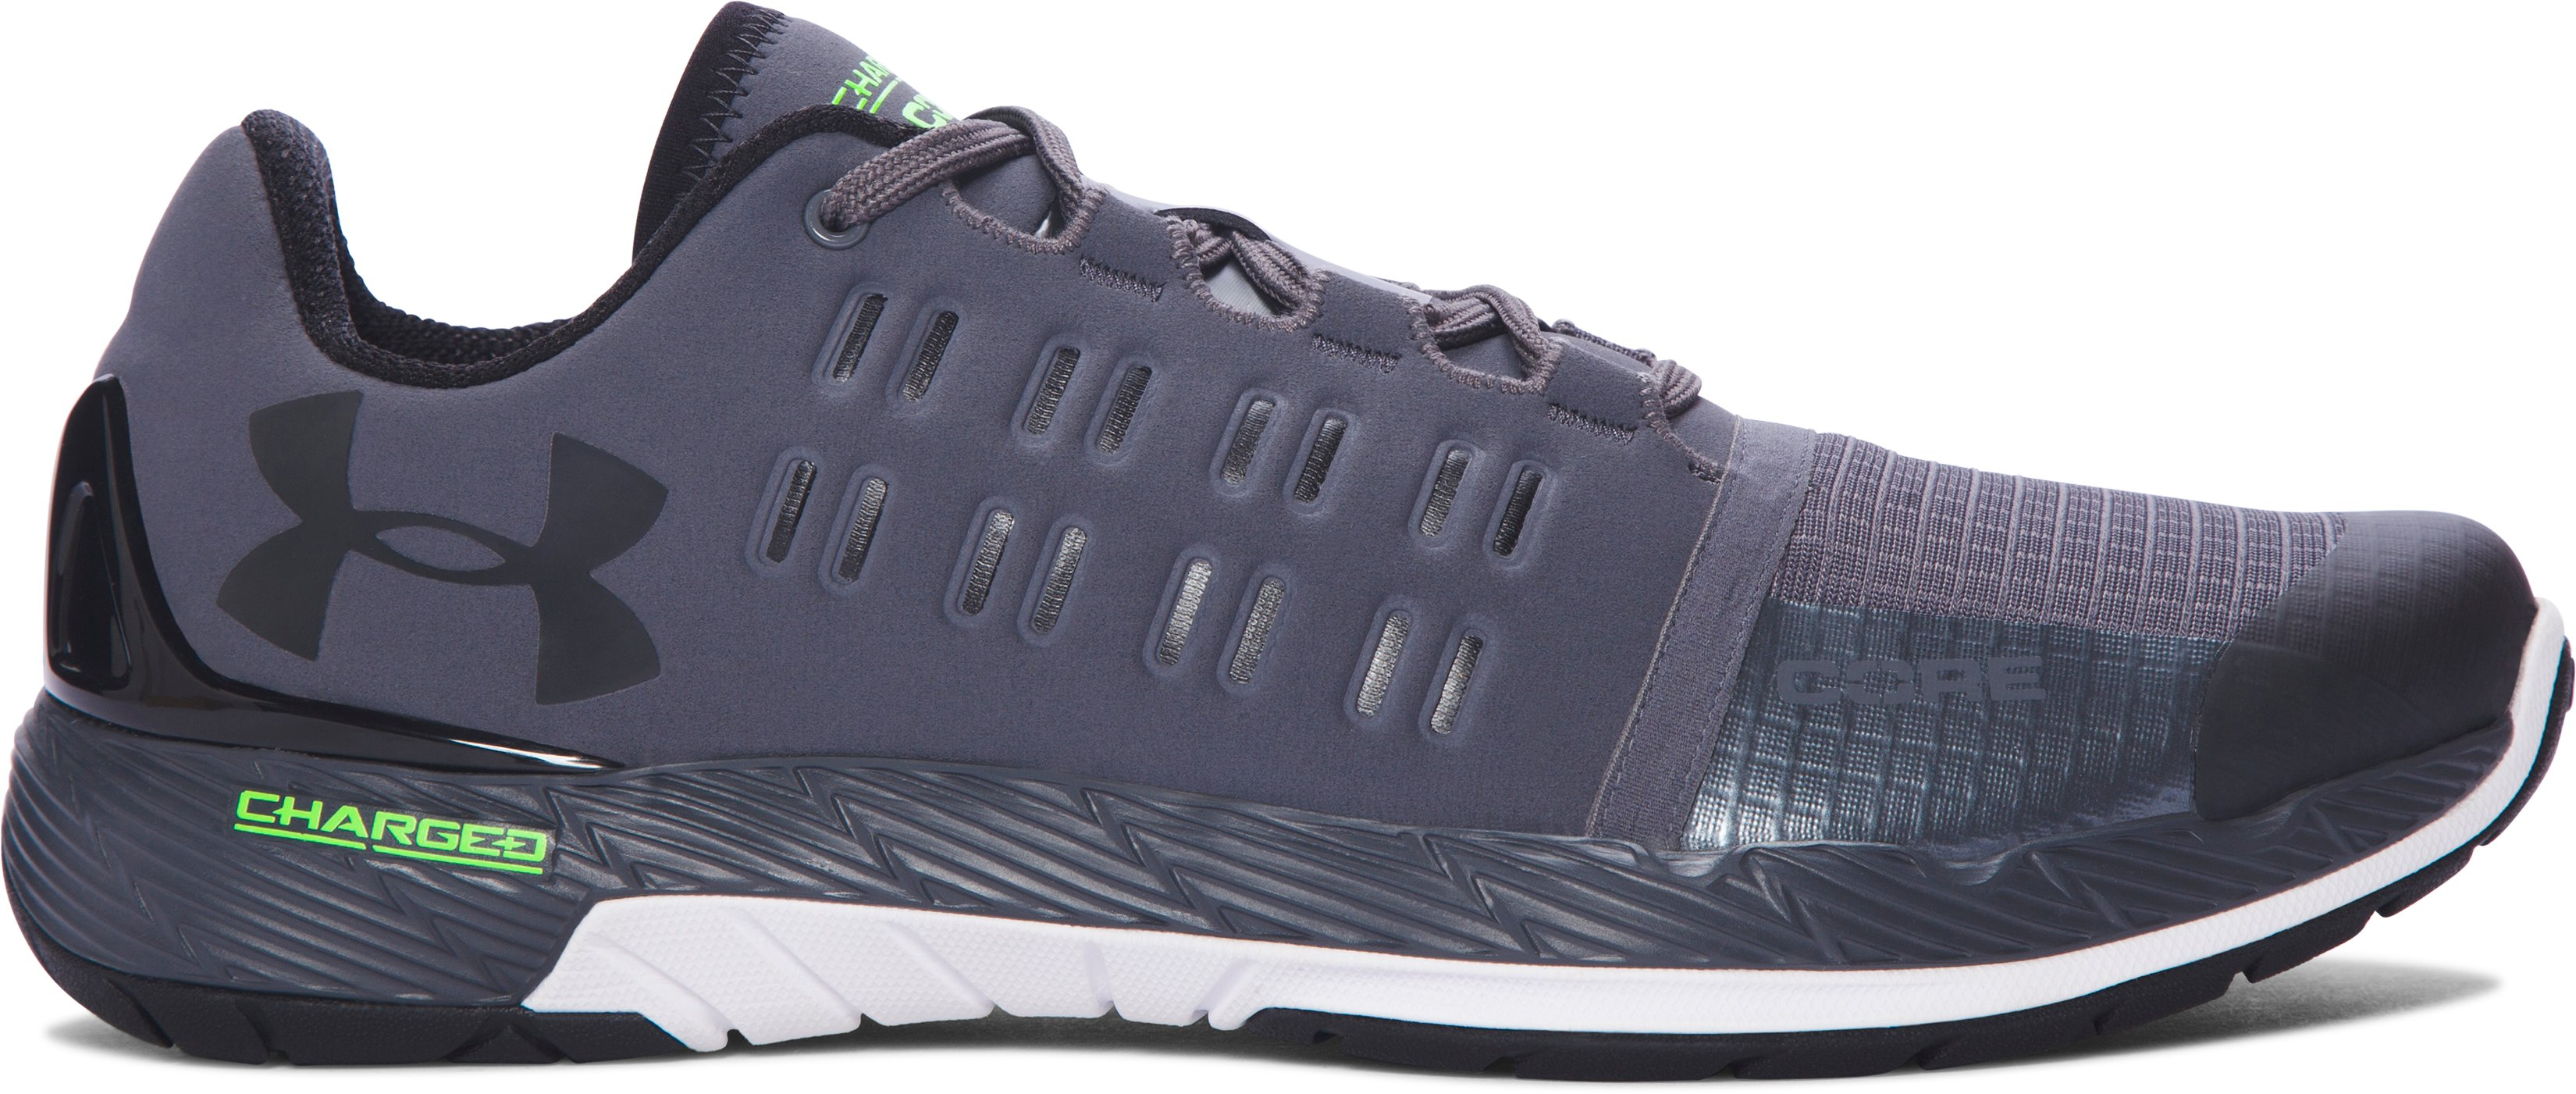 Zapatos de Training UA Charged Core para Hombre, 360 degree view